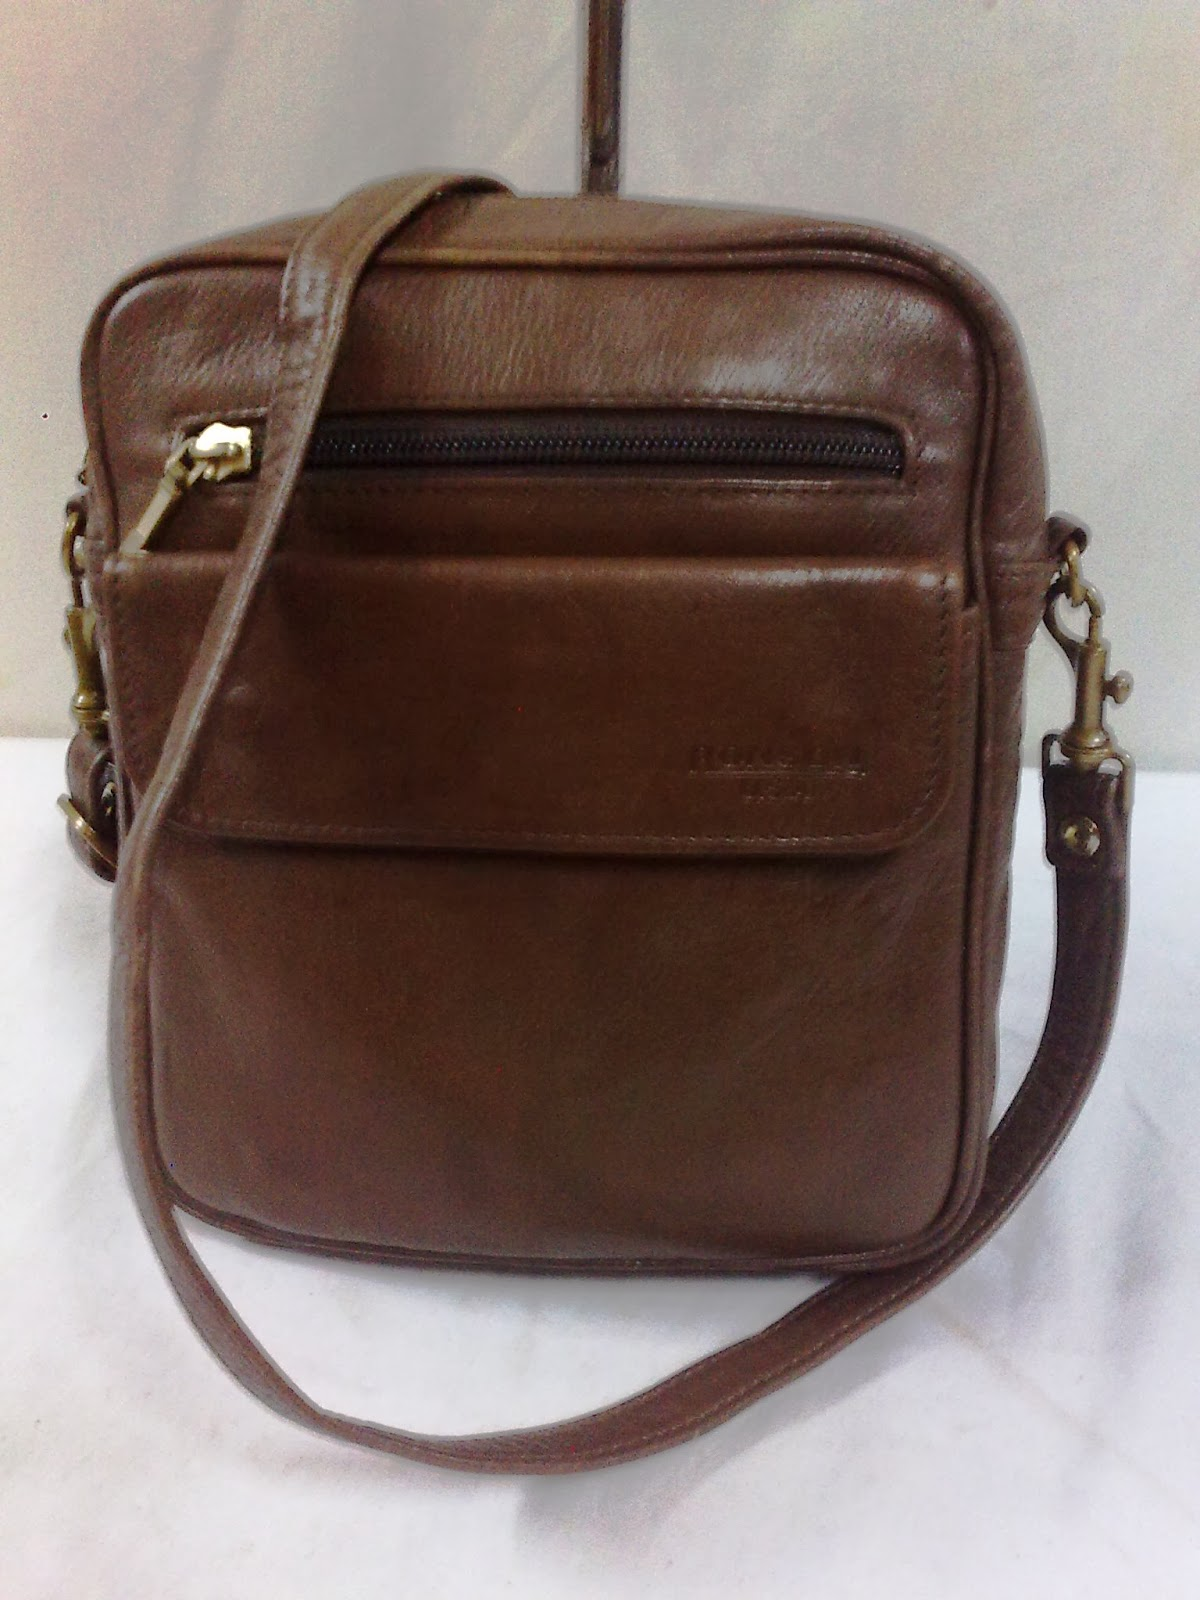 Authentic RONSON U.S.A mini Leather Sling Bag (SOLD)